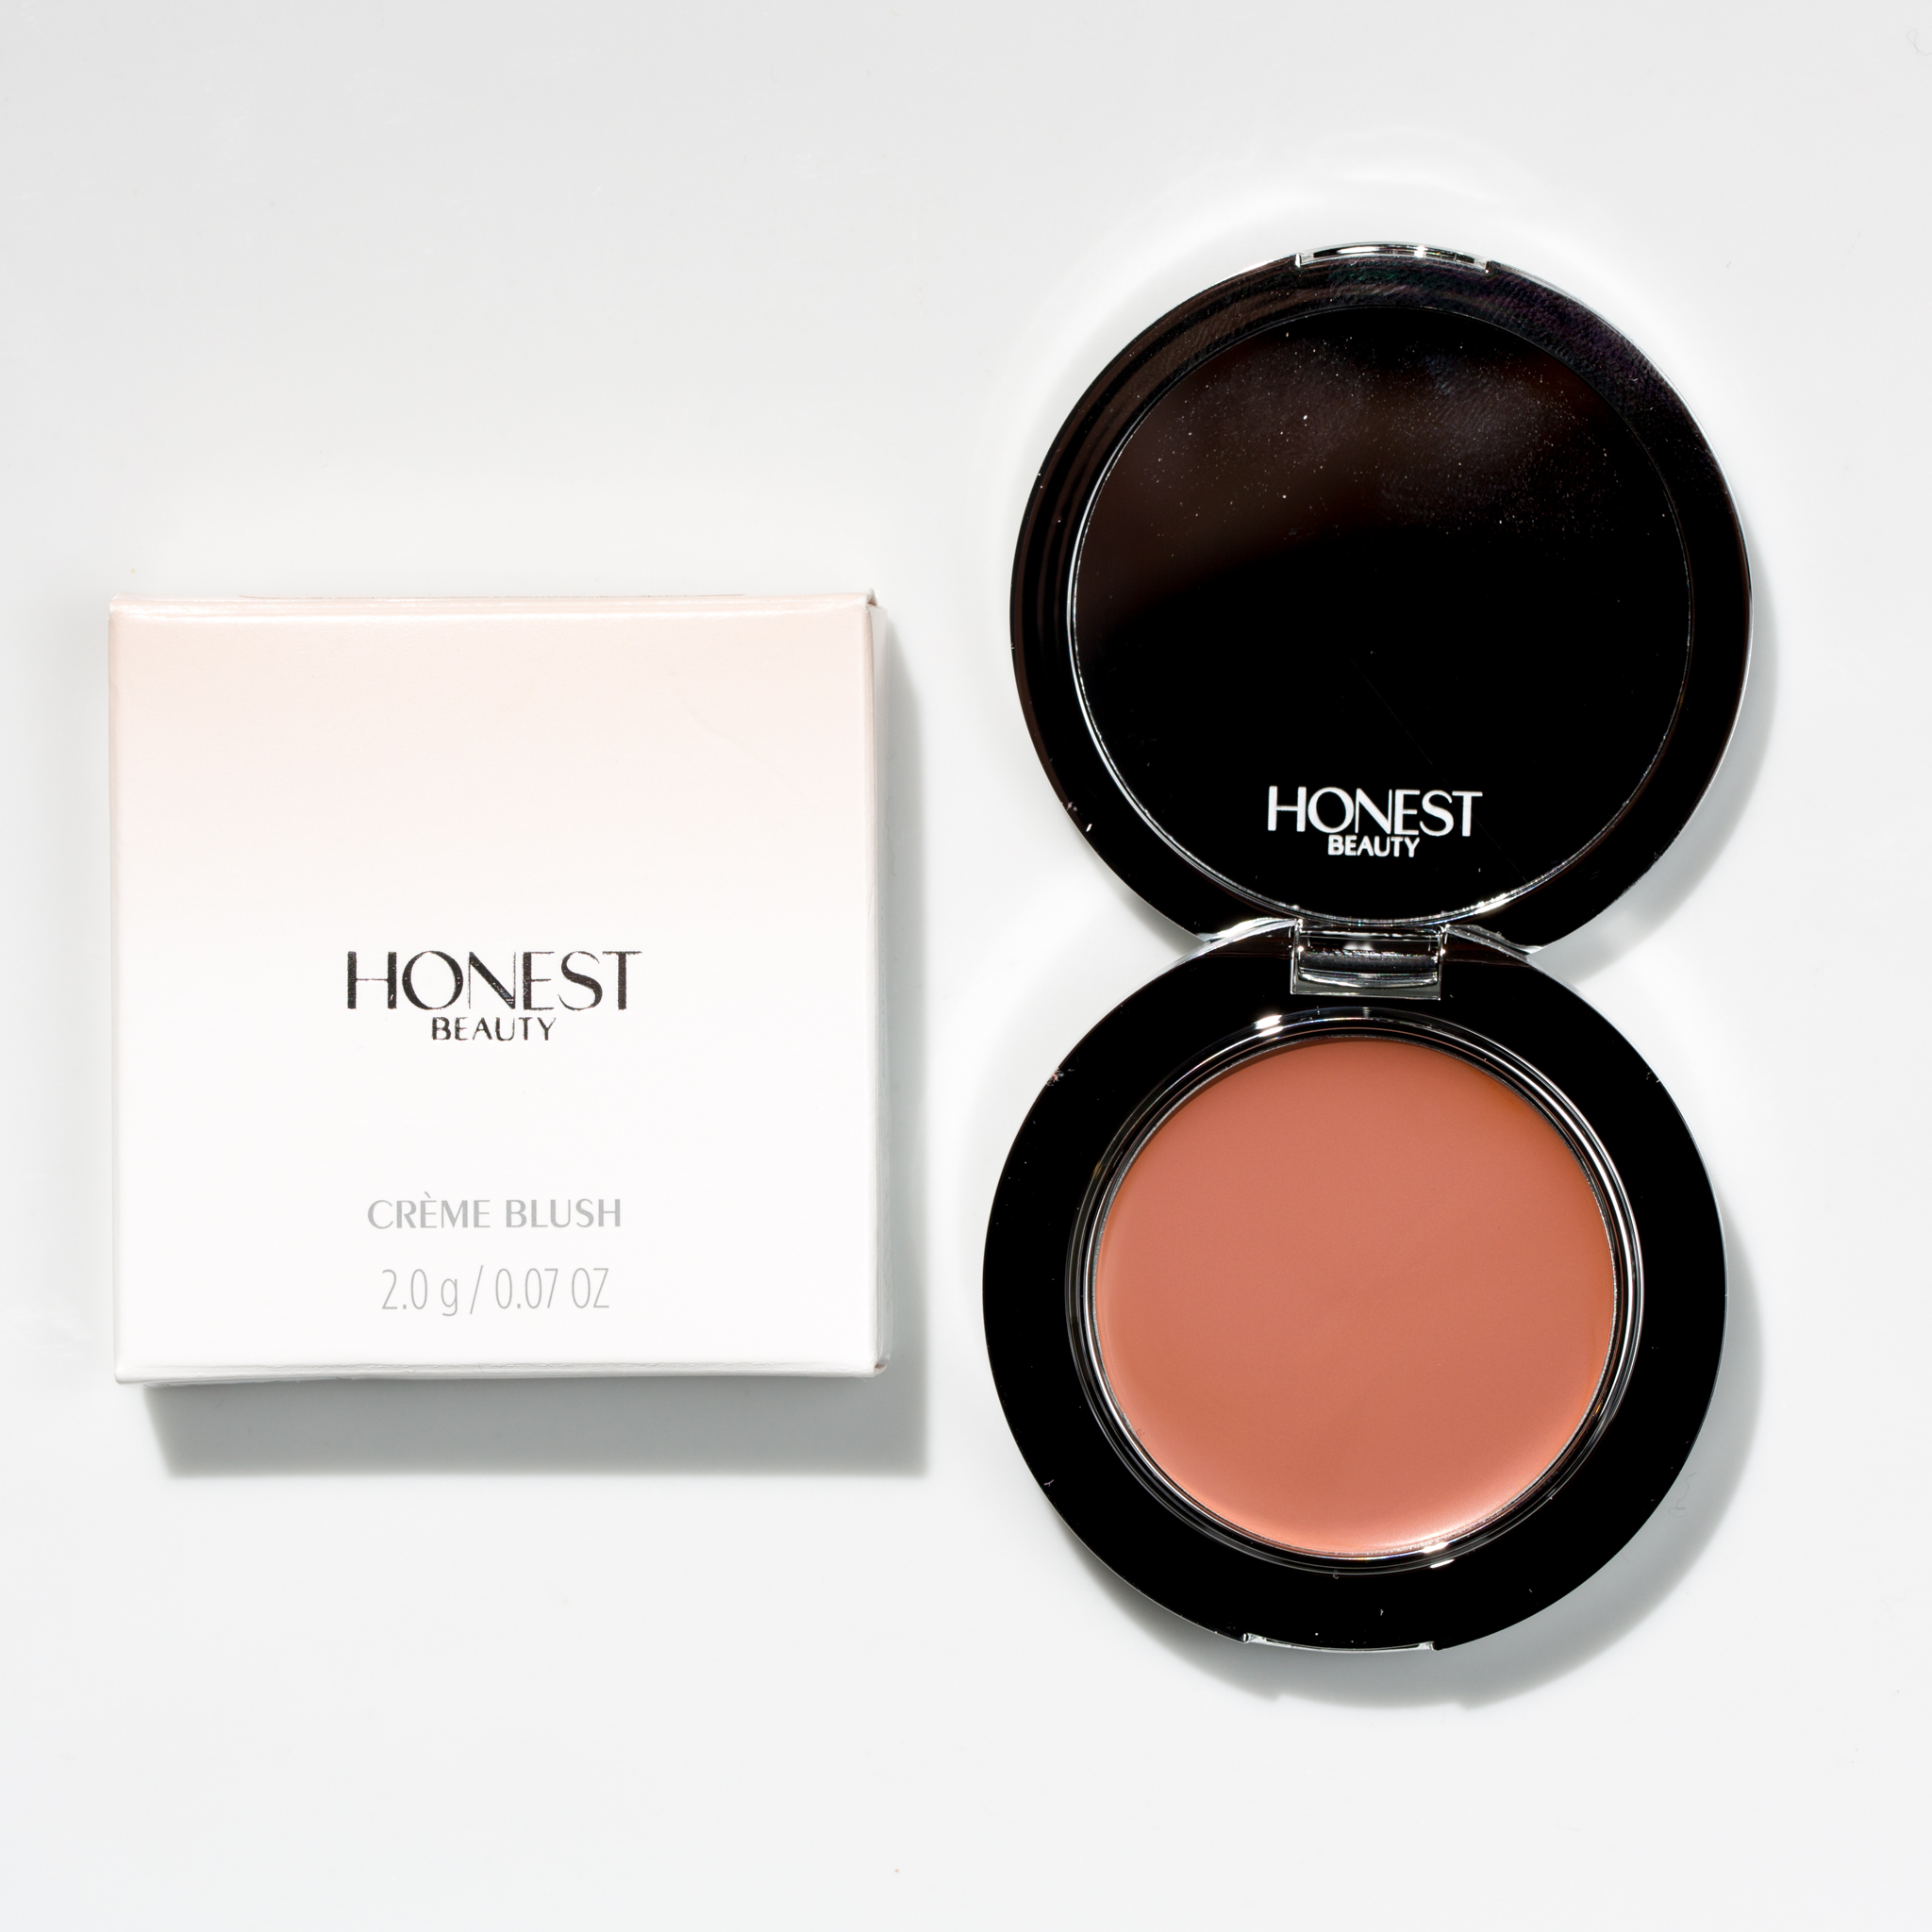 Honest Beauty Créme Blush in Truly Exciting